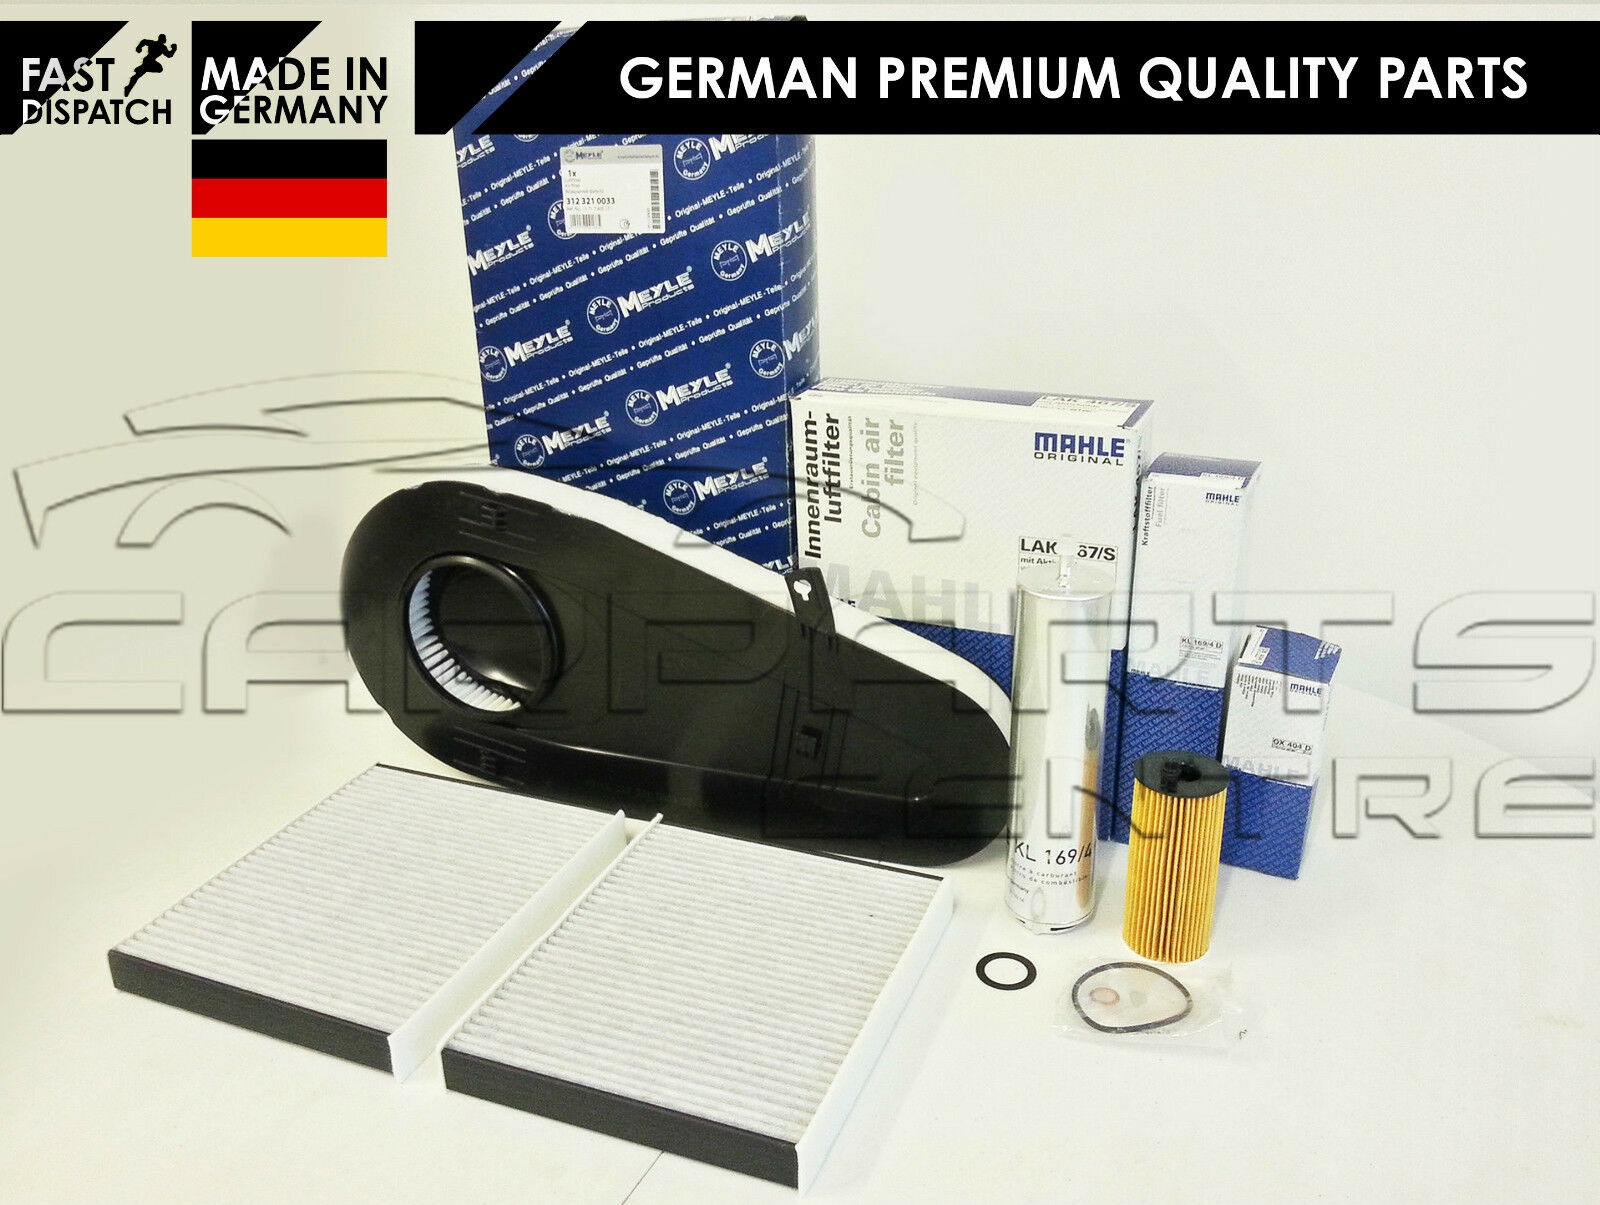 Details about FOR BMW 520 D 520D F10 F11 SERVICE KIT OIL AIR FUEL CABIN  POLLEN FILTER MAHLE